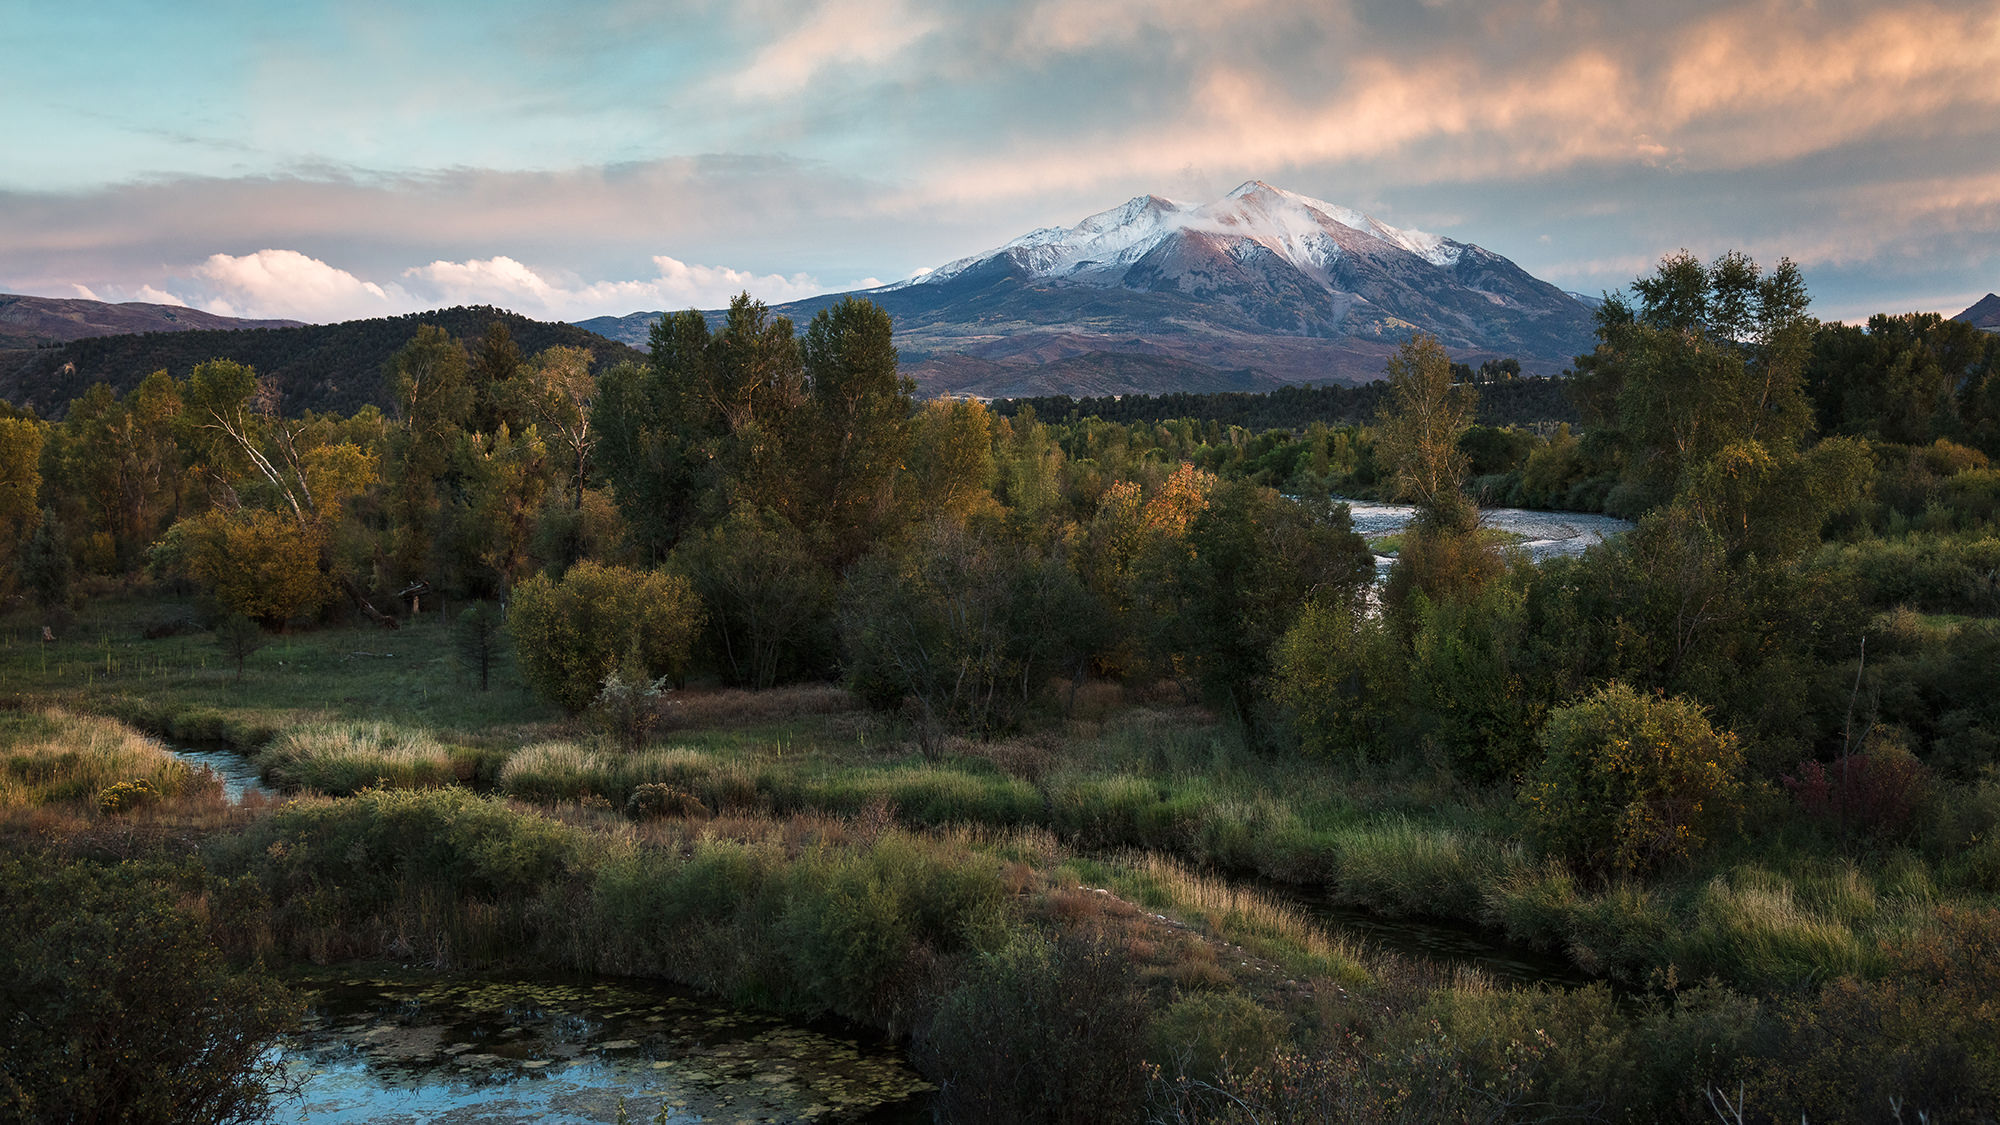 sunset over mt. Sopris - Carbondale, CO